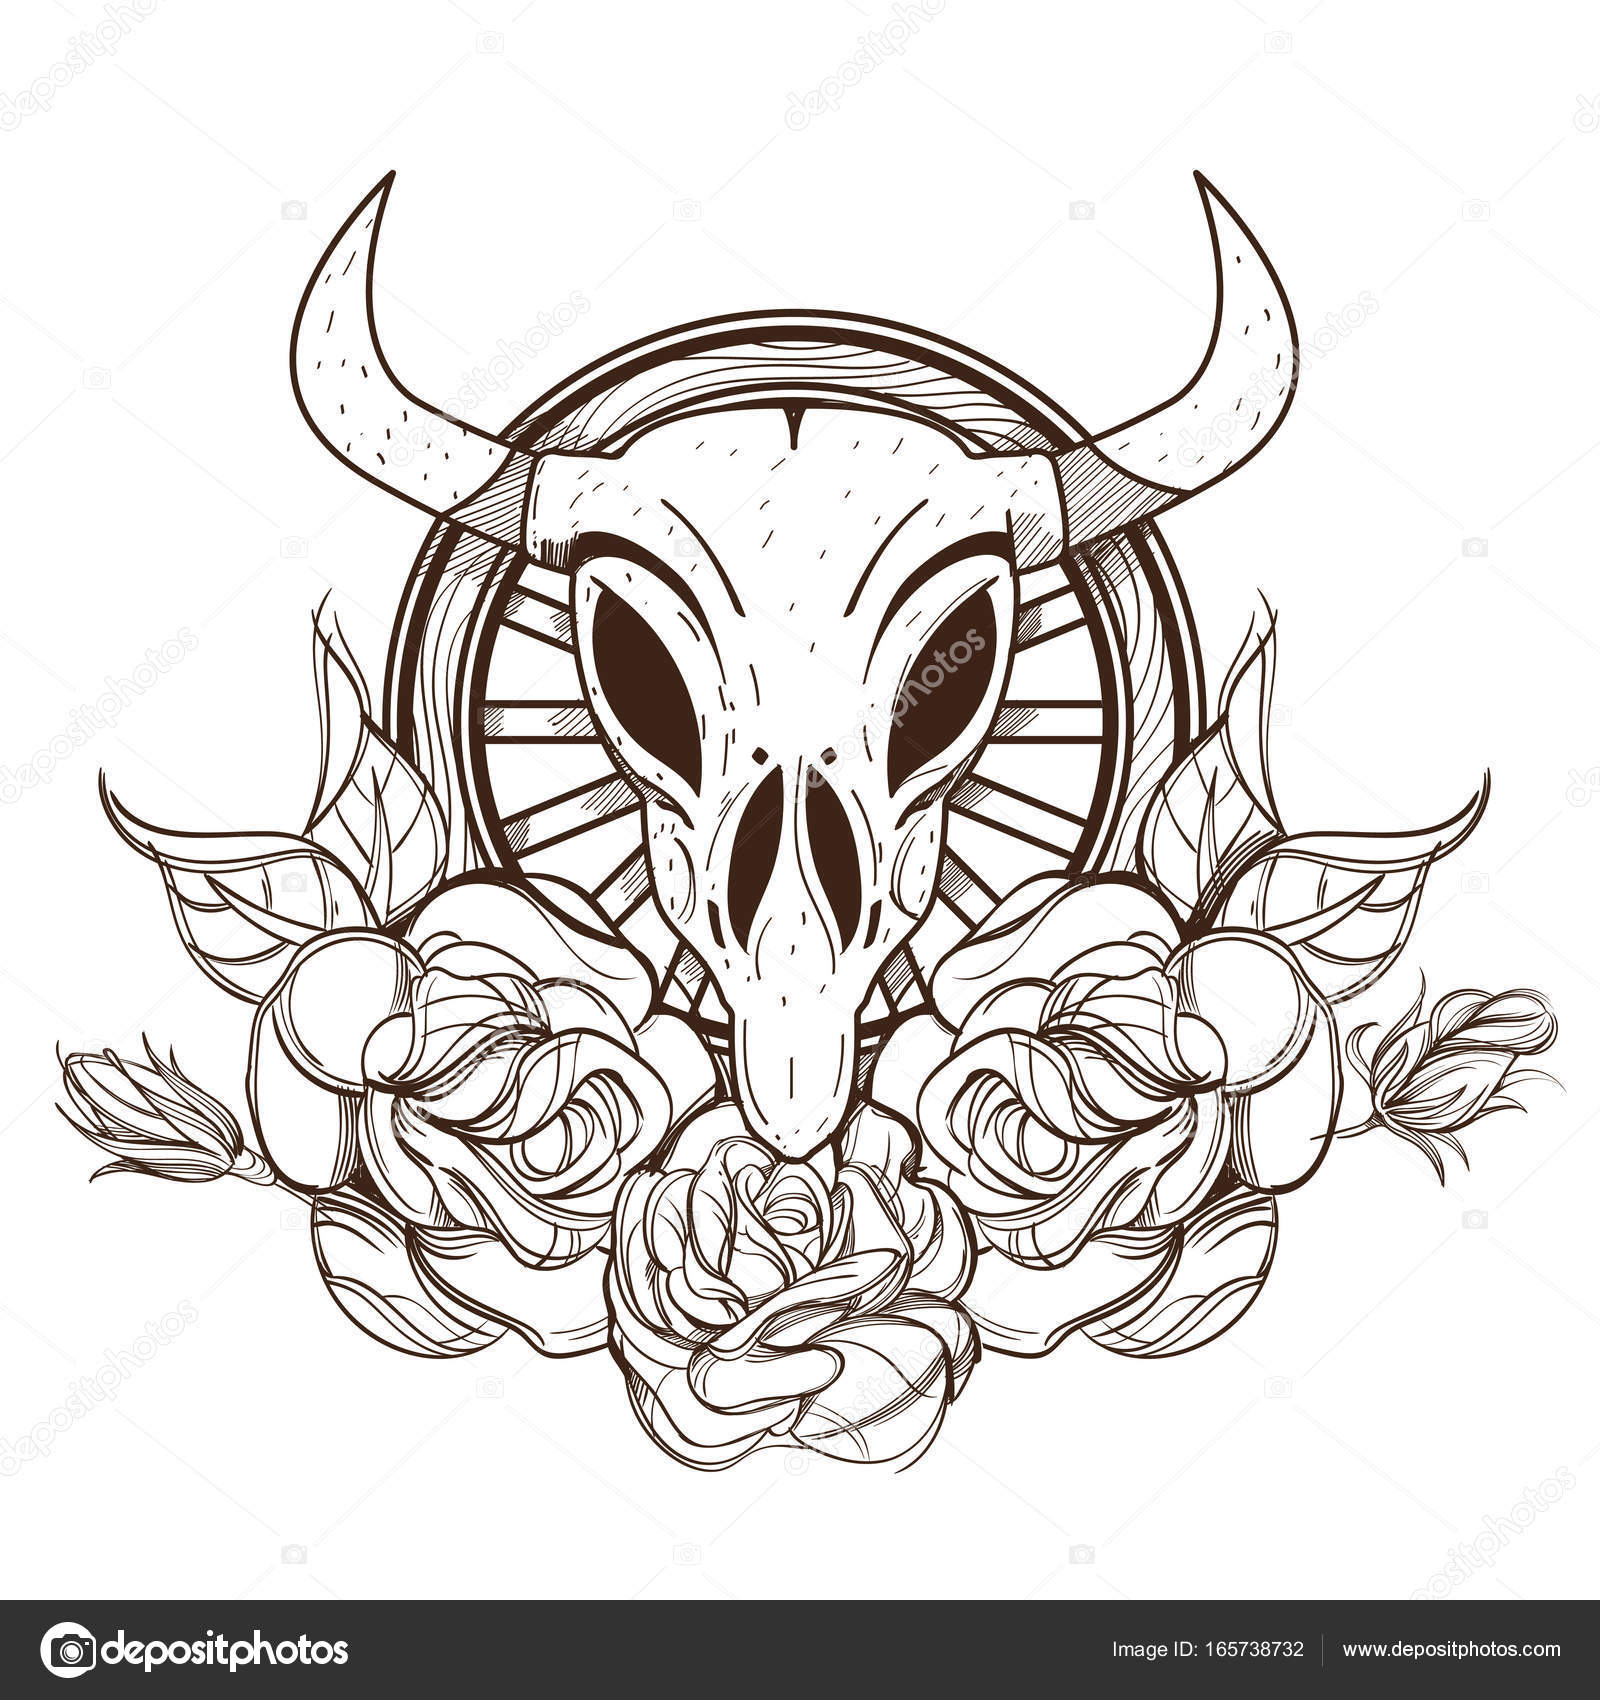 Cow Or Bull Skull With Roses Outline Vector Illustration Isolated On White Background For Tattoos Design T Shirts Coloring Pages And Other Items